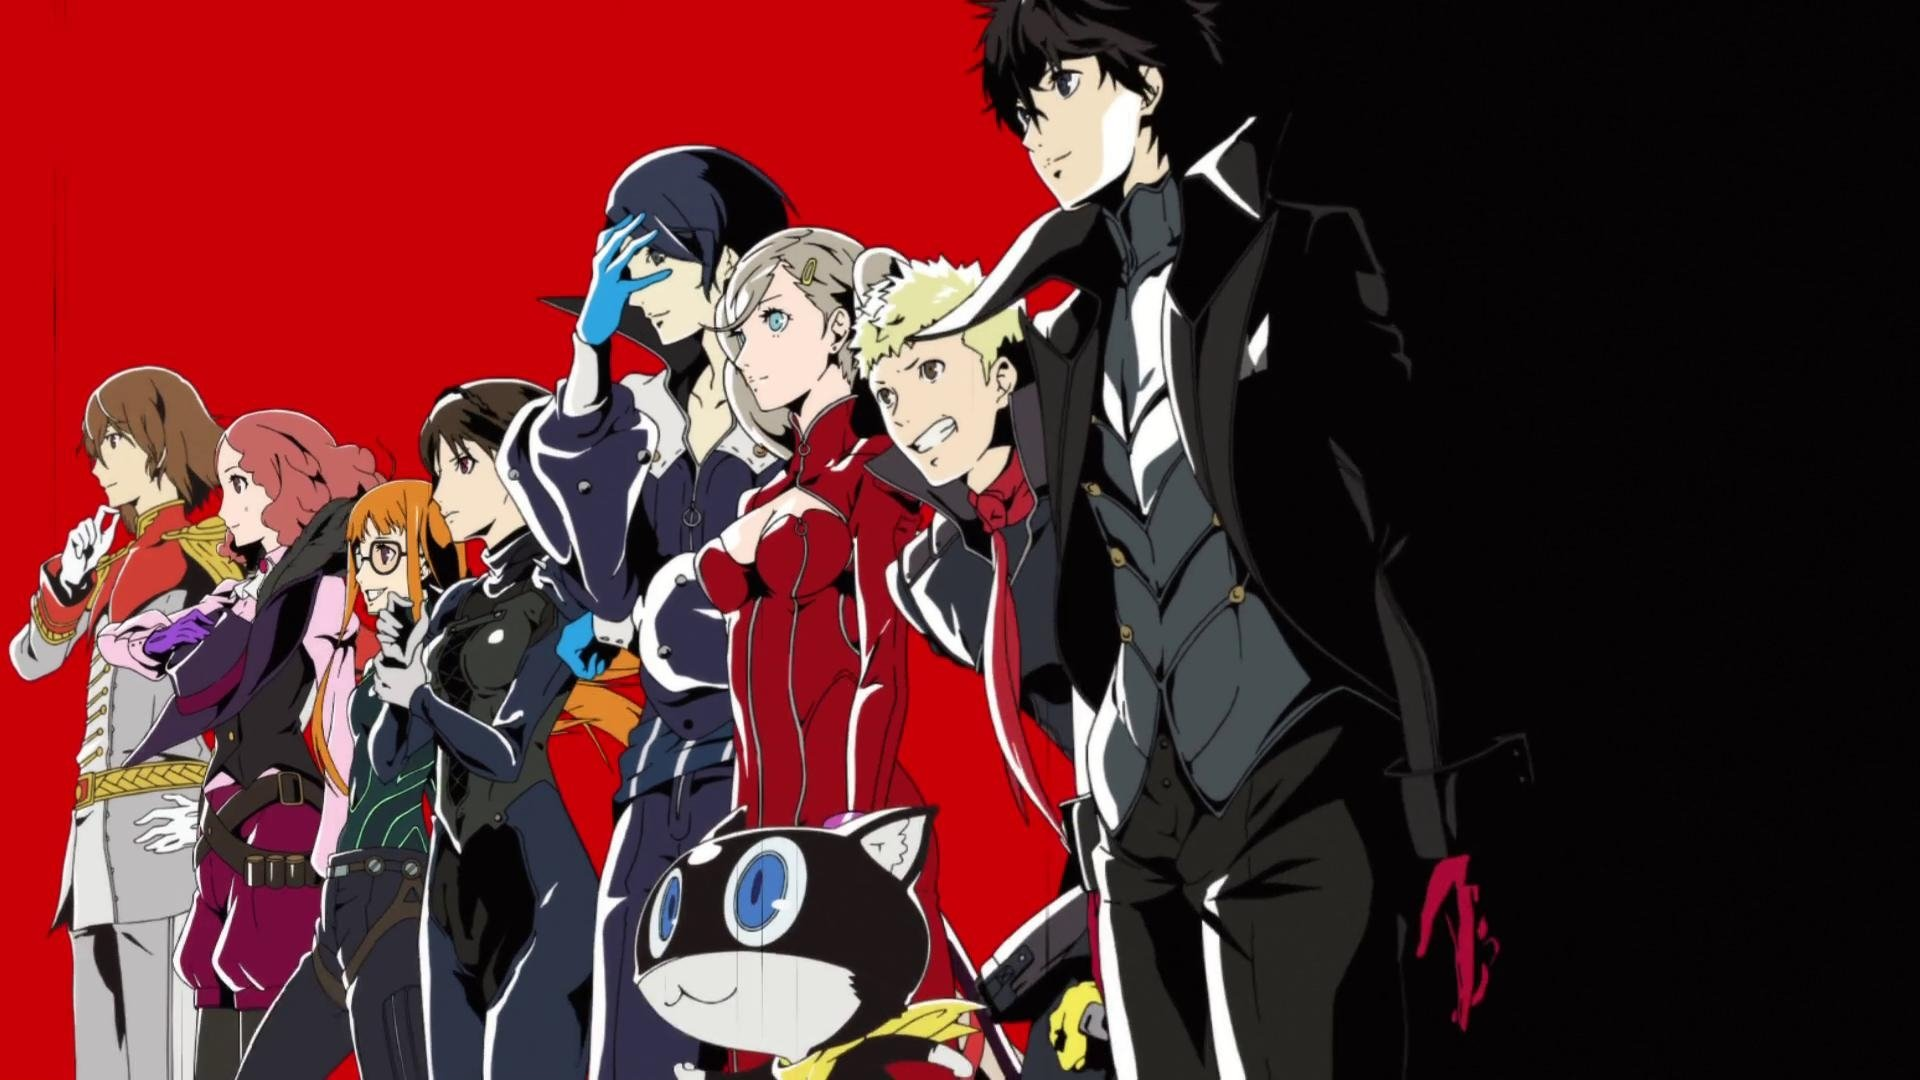 Persona 5 Royal Wallpapers 20 Images Wallpaperboat